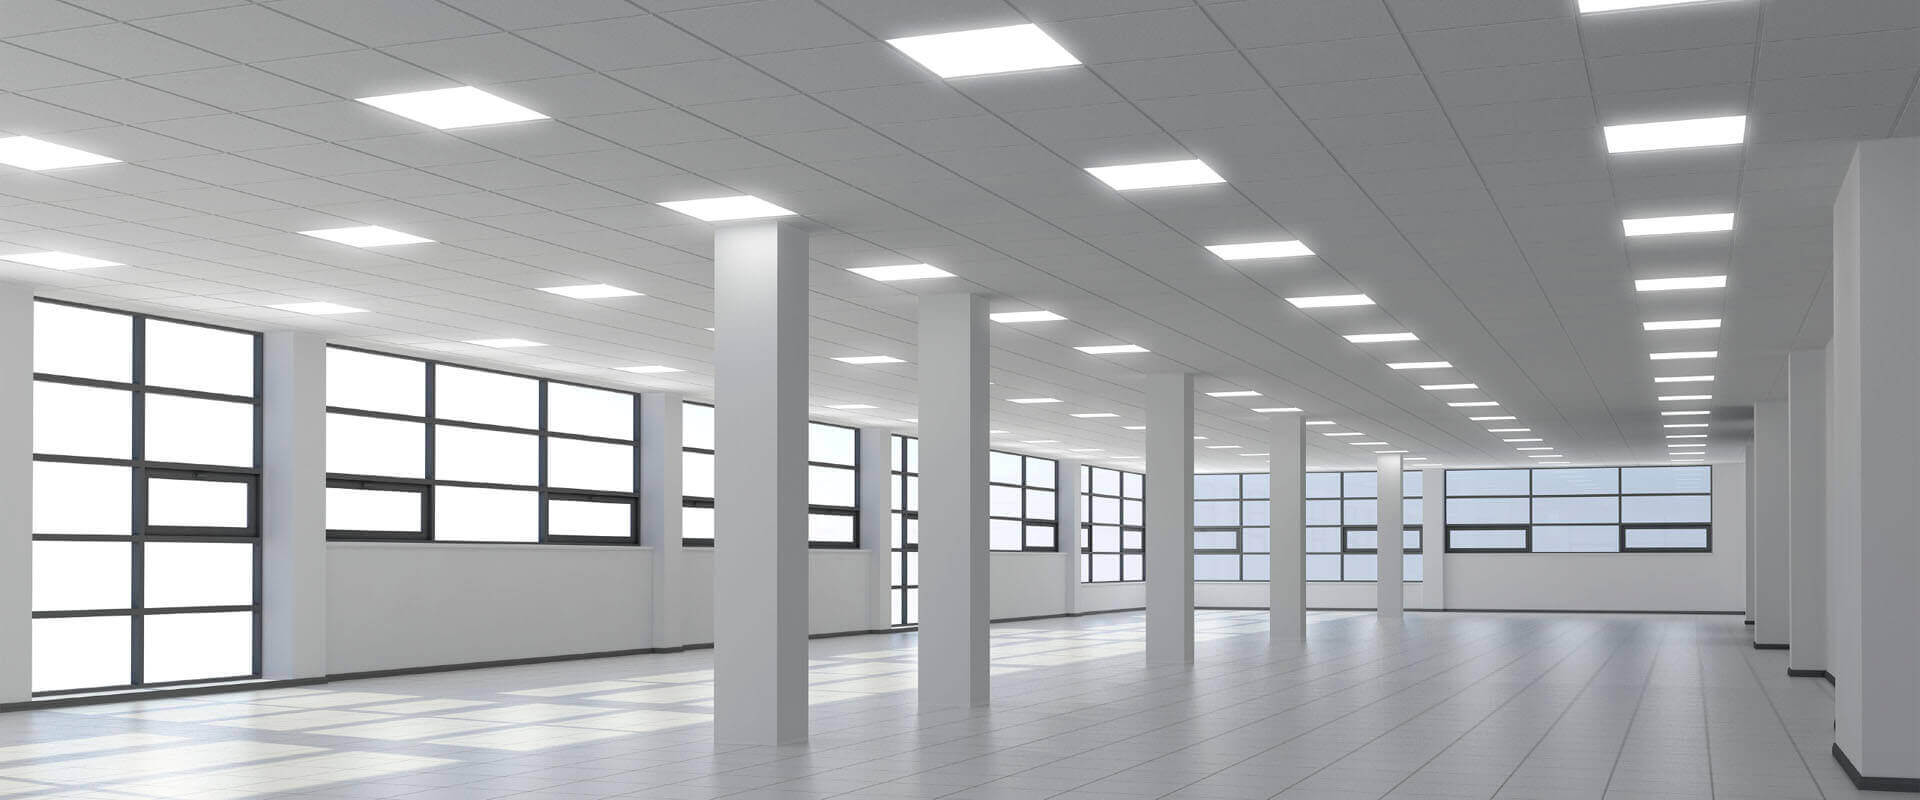 LED lighting services in Southend